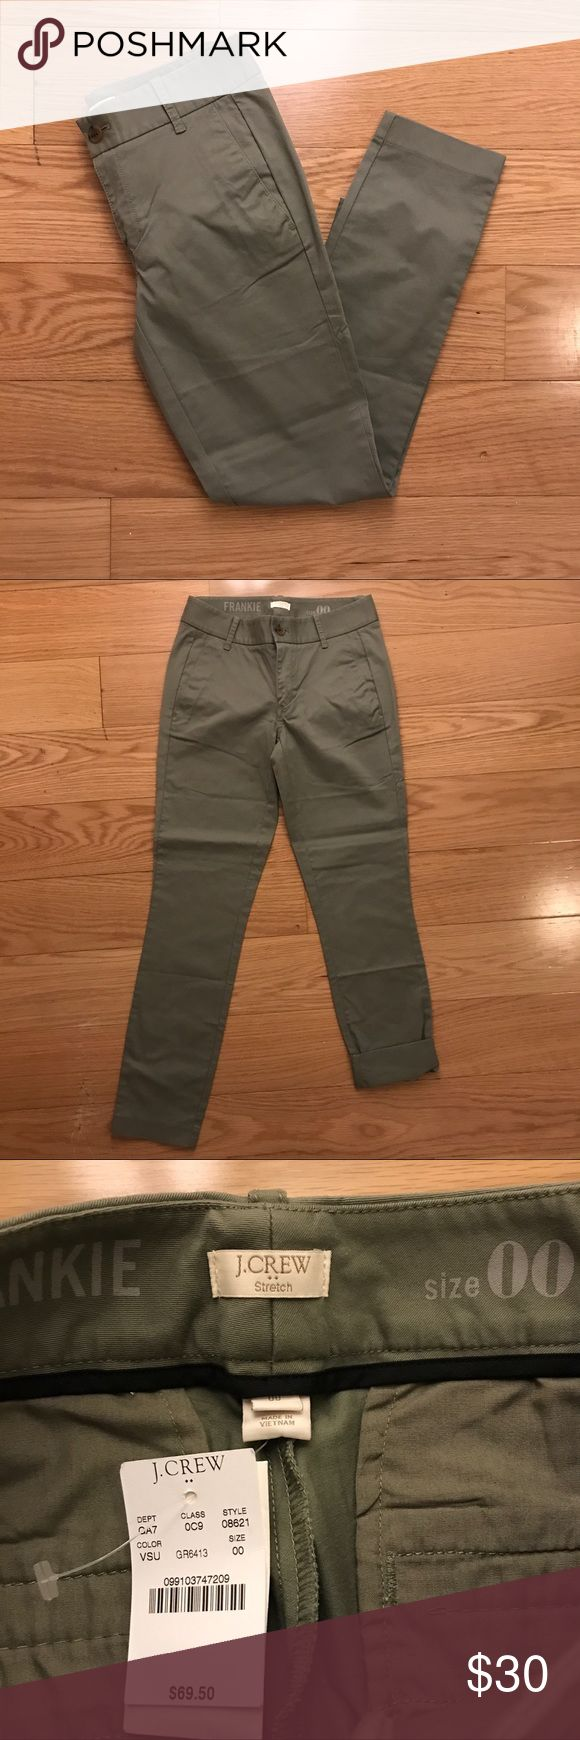 NWT J. Crew Olive Chinos Brand new! J. Crew Factory olive green chinos. Ankle pants with a slim fit. Size 00 J. Crew Factory Pants Ankle & Cropped